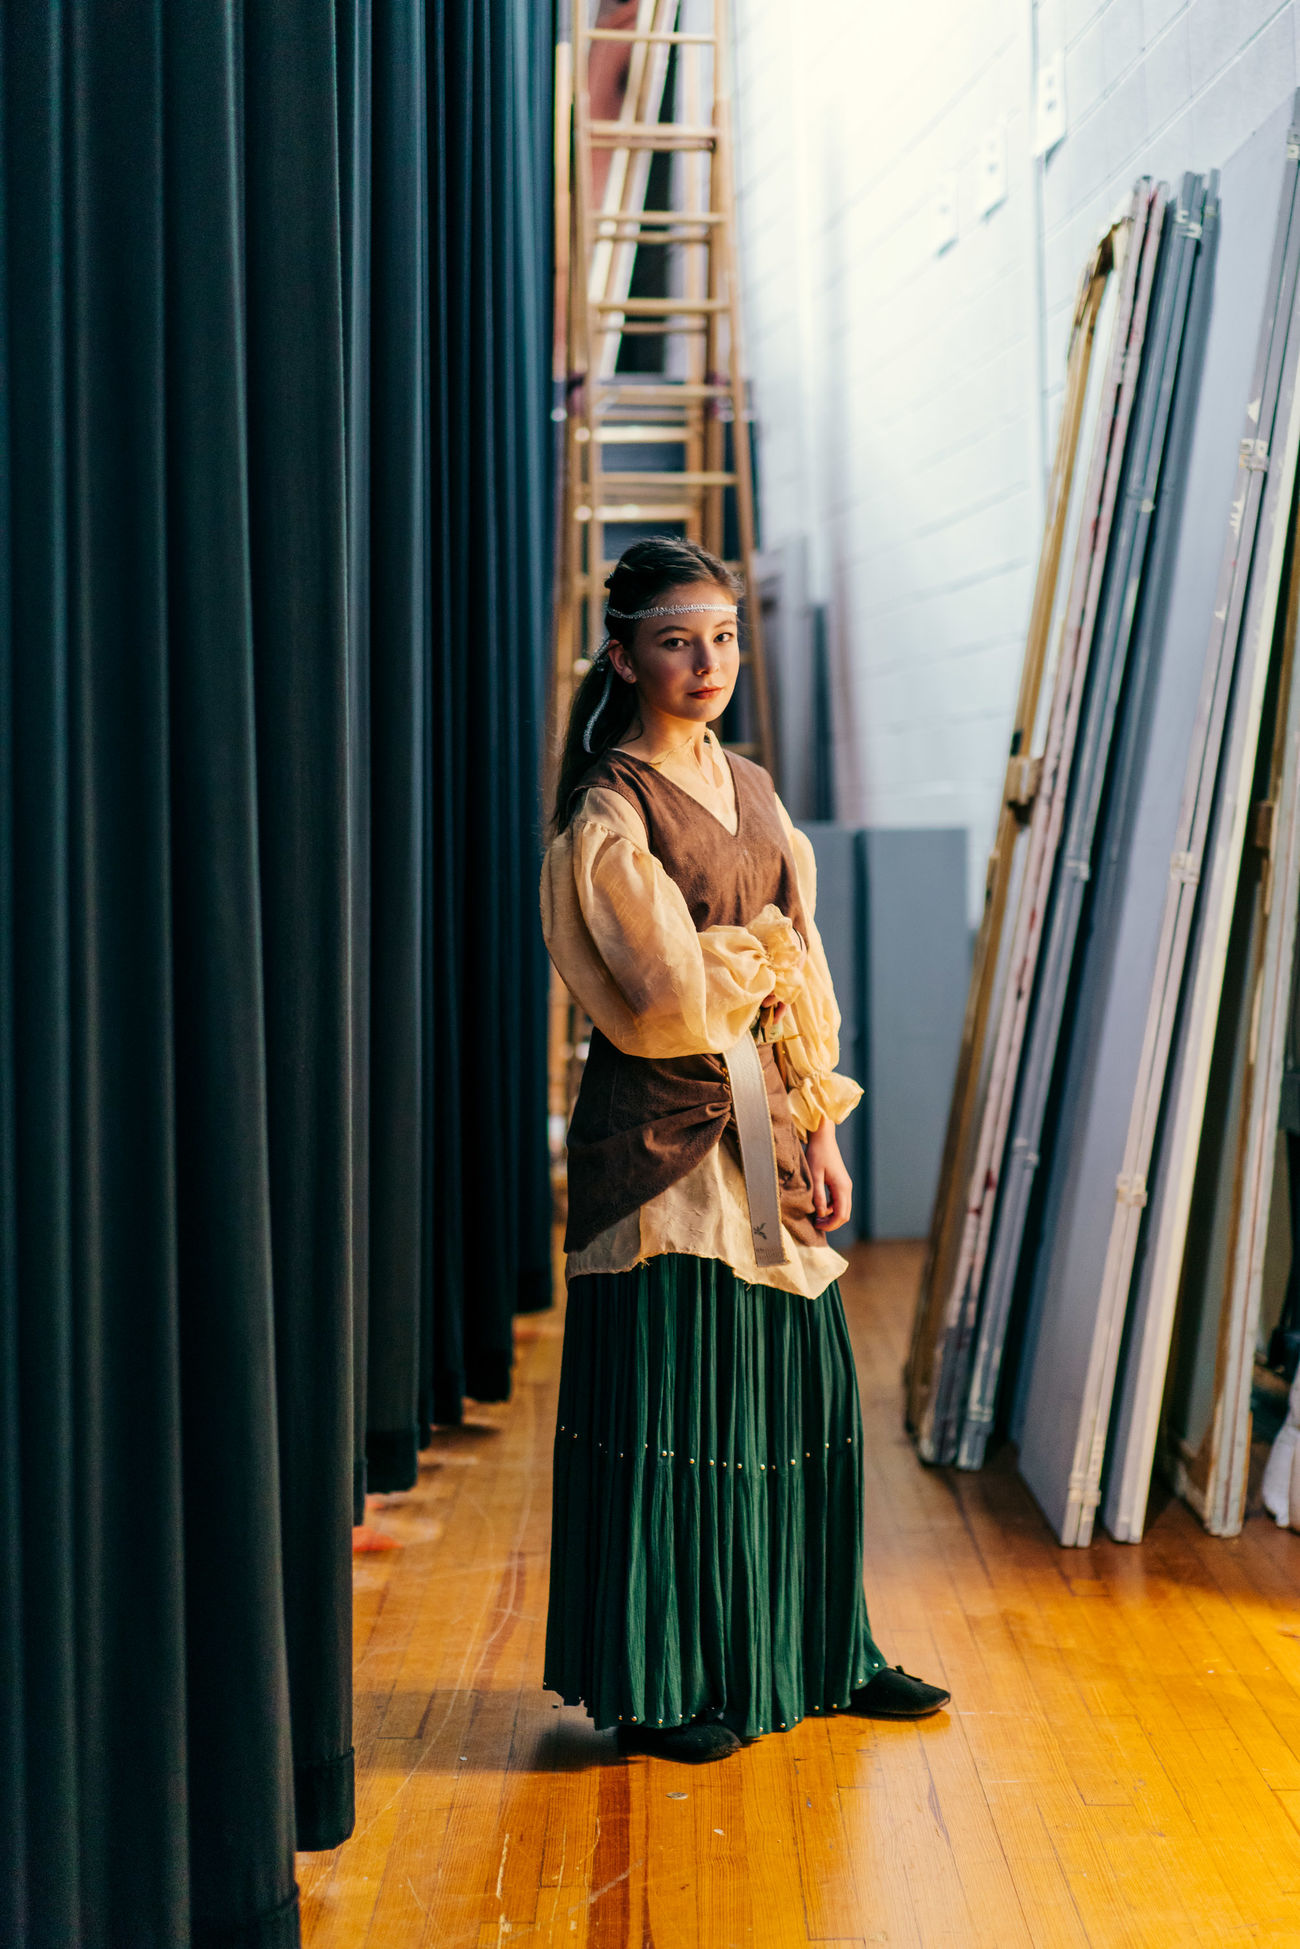 Middle school theater - behind the scenes The Portraitist - 2017 EyeEm Awards